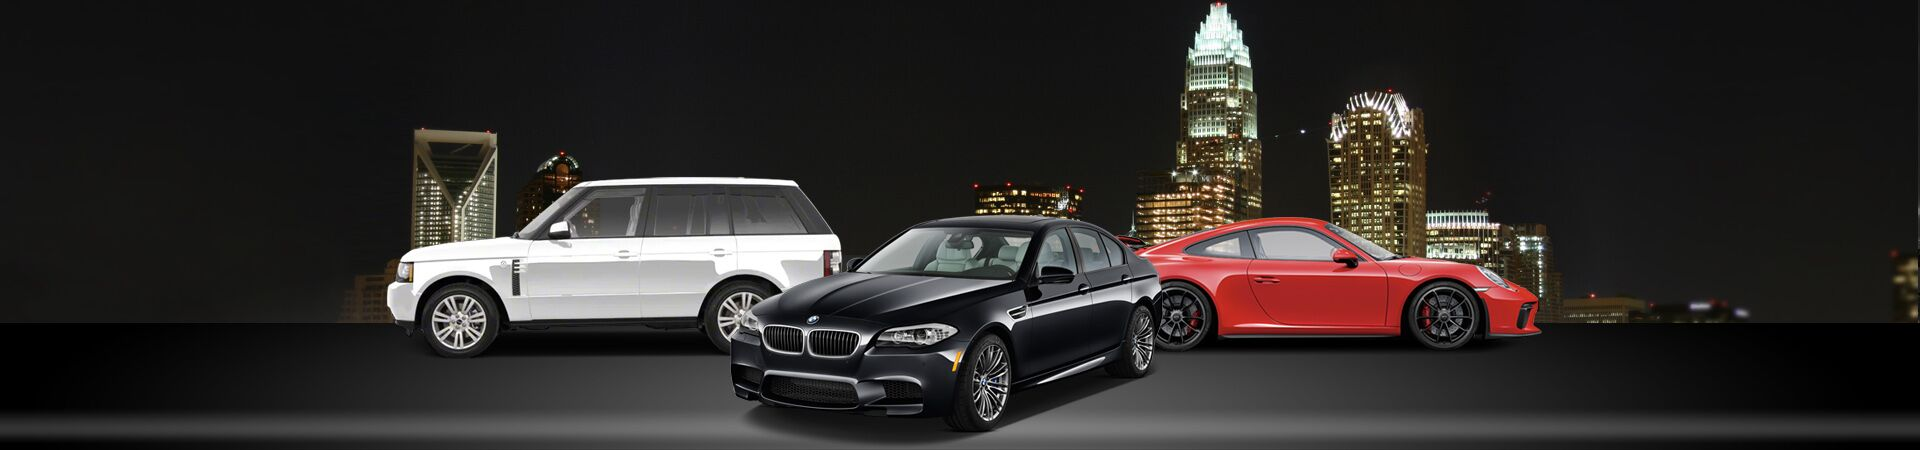 Pre Owned Vehicles in Charlotte, NC